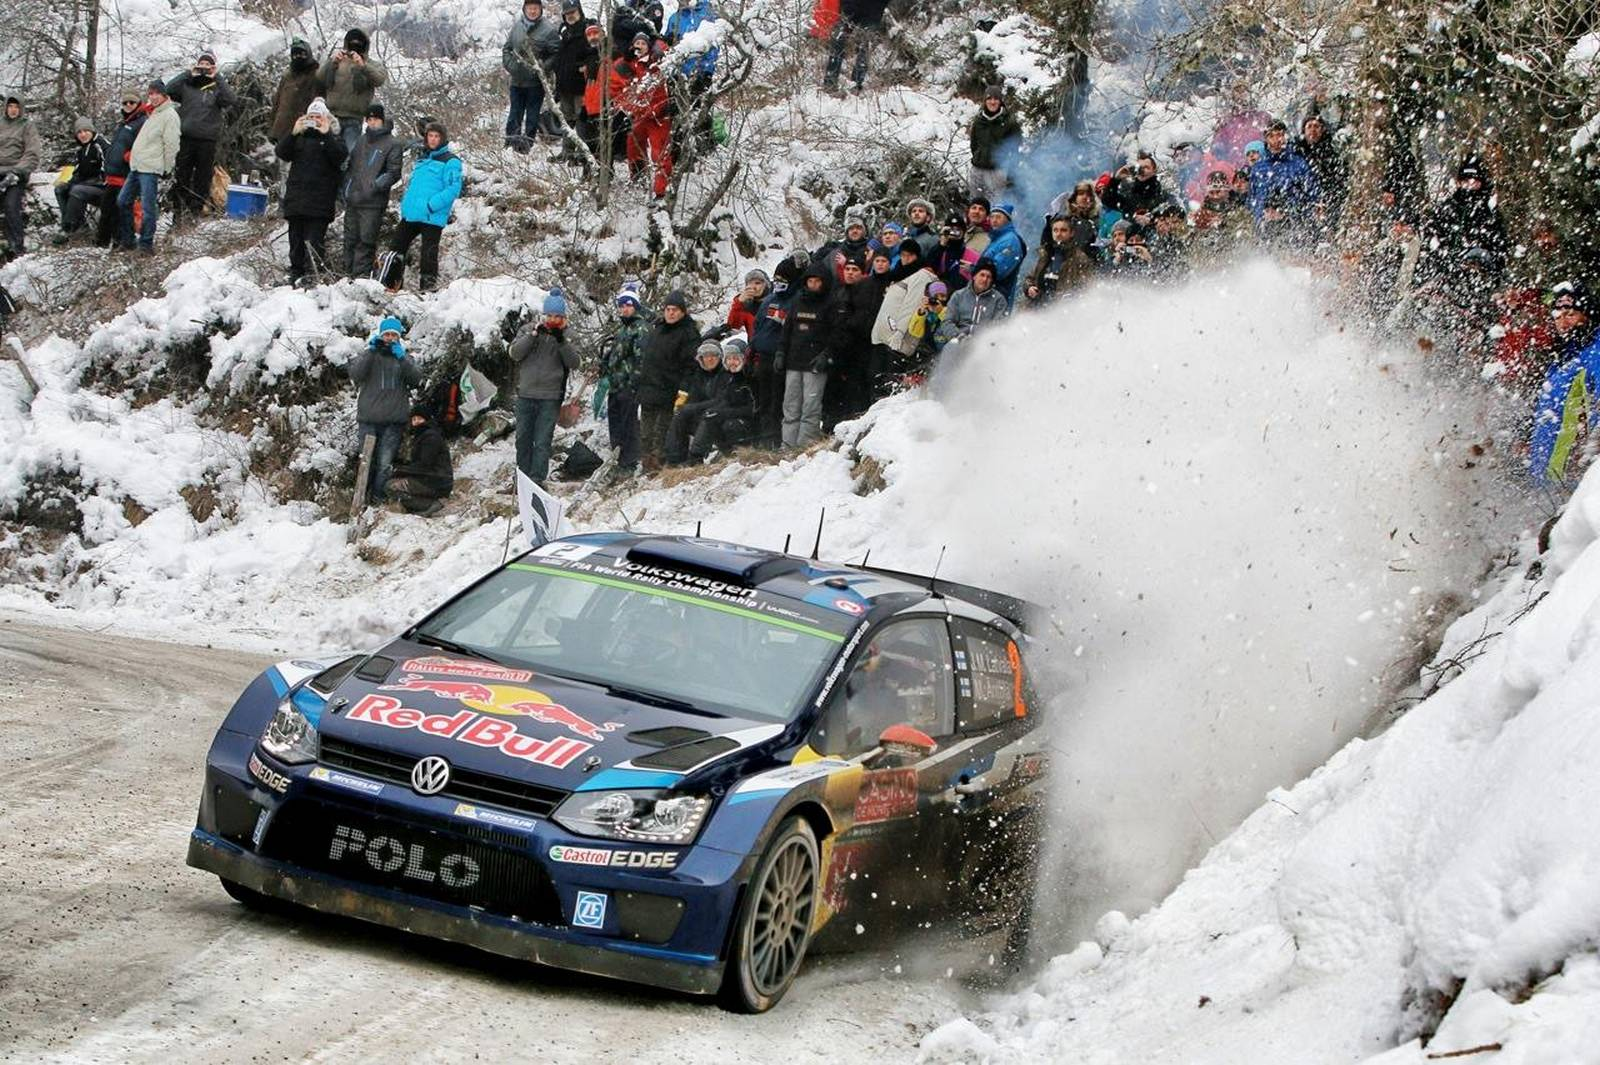 wrc vw dominates monte carlo rally with clean podium sweep gtspirit. Black Bedroom Furniture Sets. Home Design Ideas